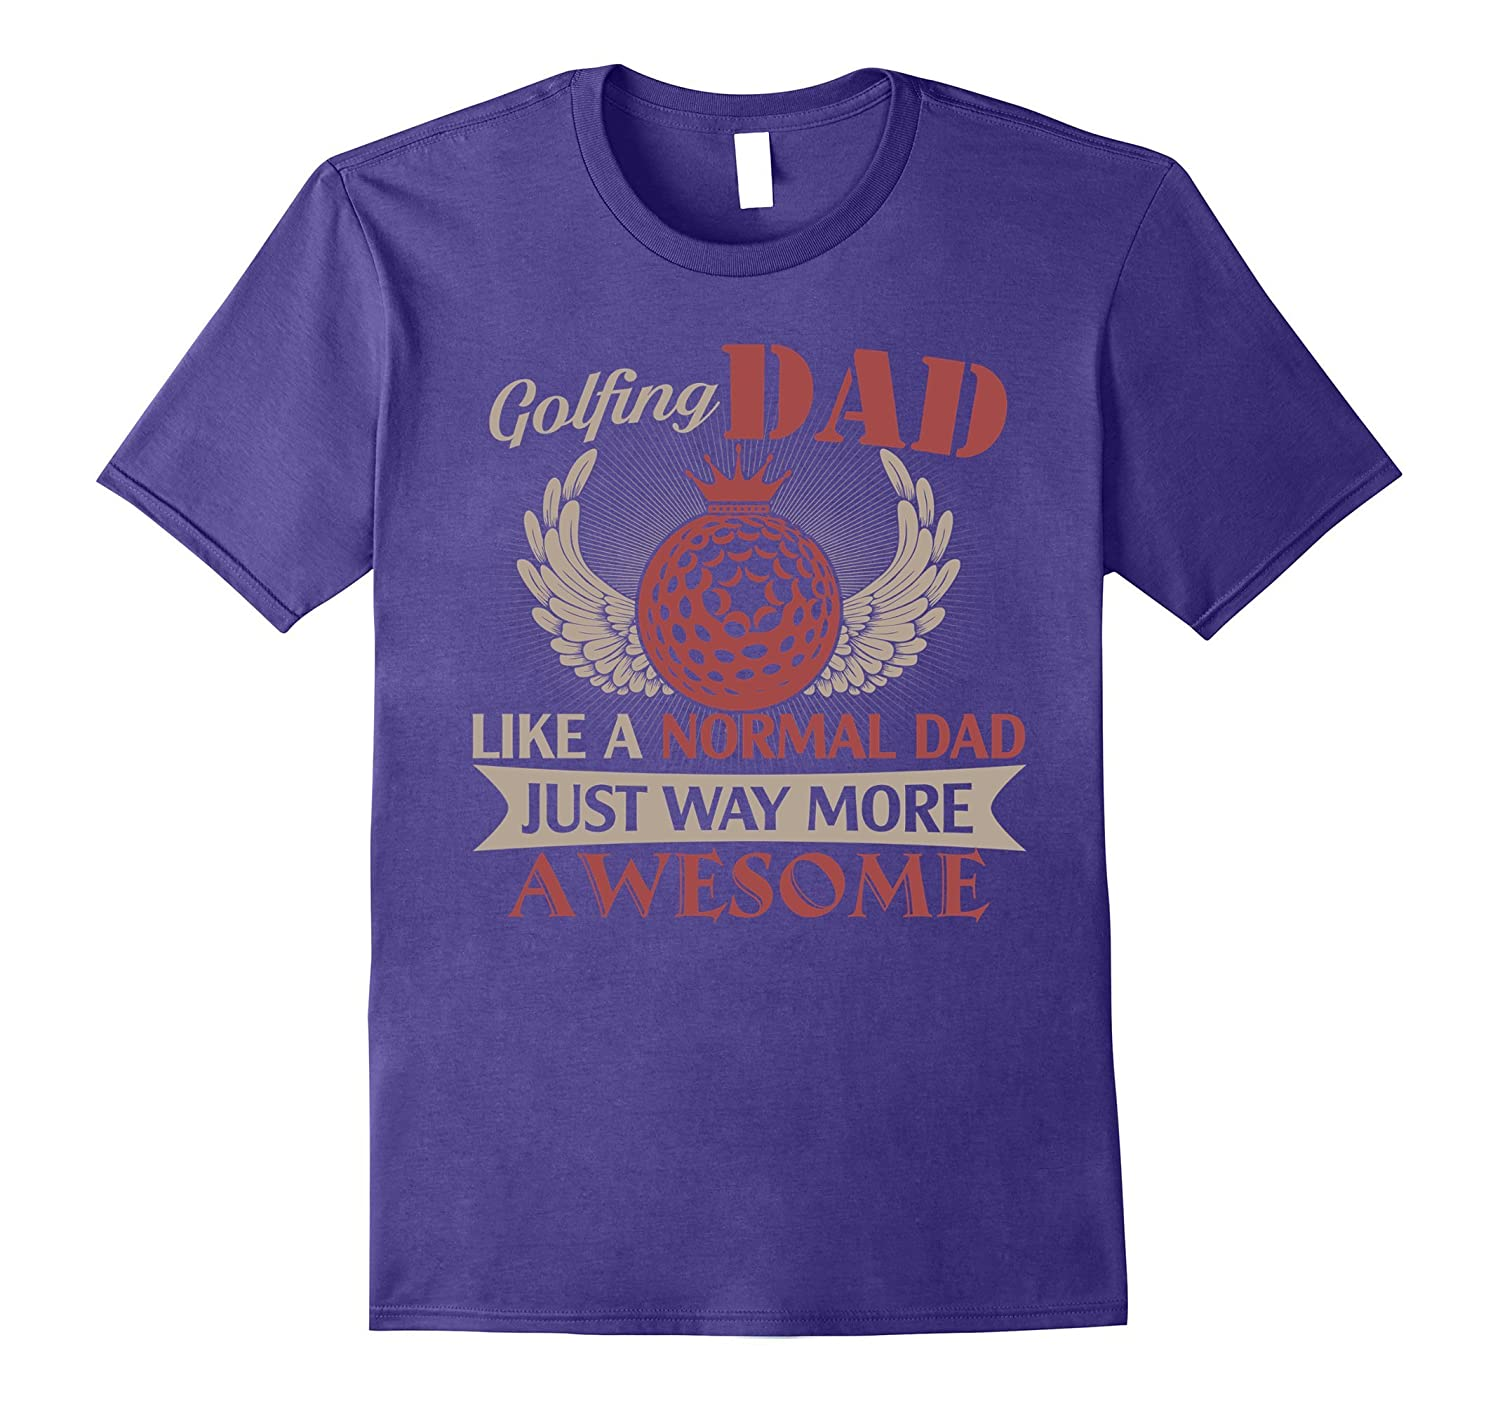 Awesome Golfing Dad Funny Sports Tshirt for Daddy Love Golf-Vaci